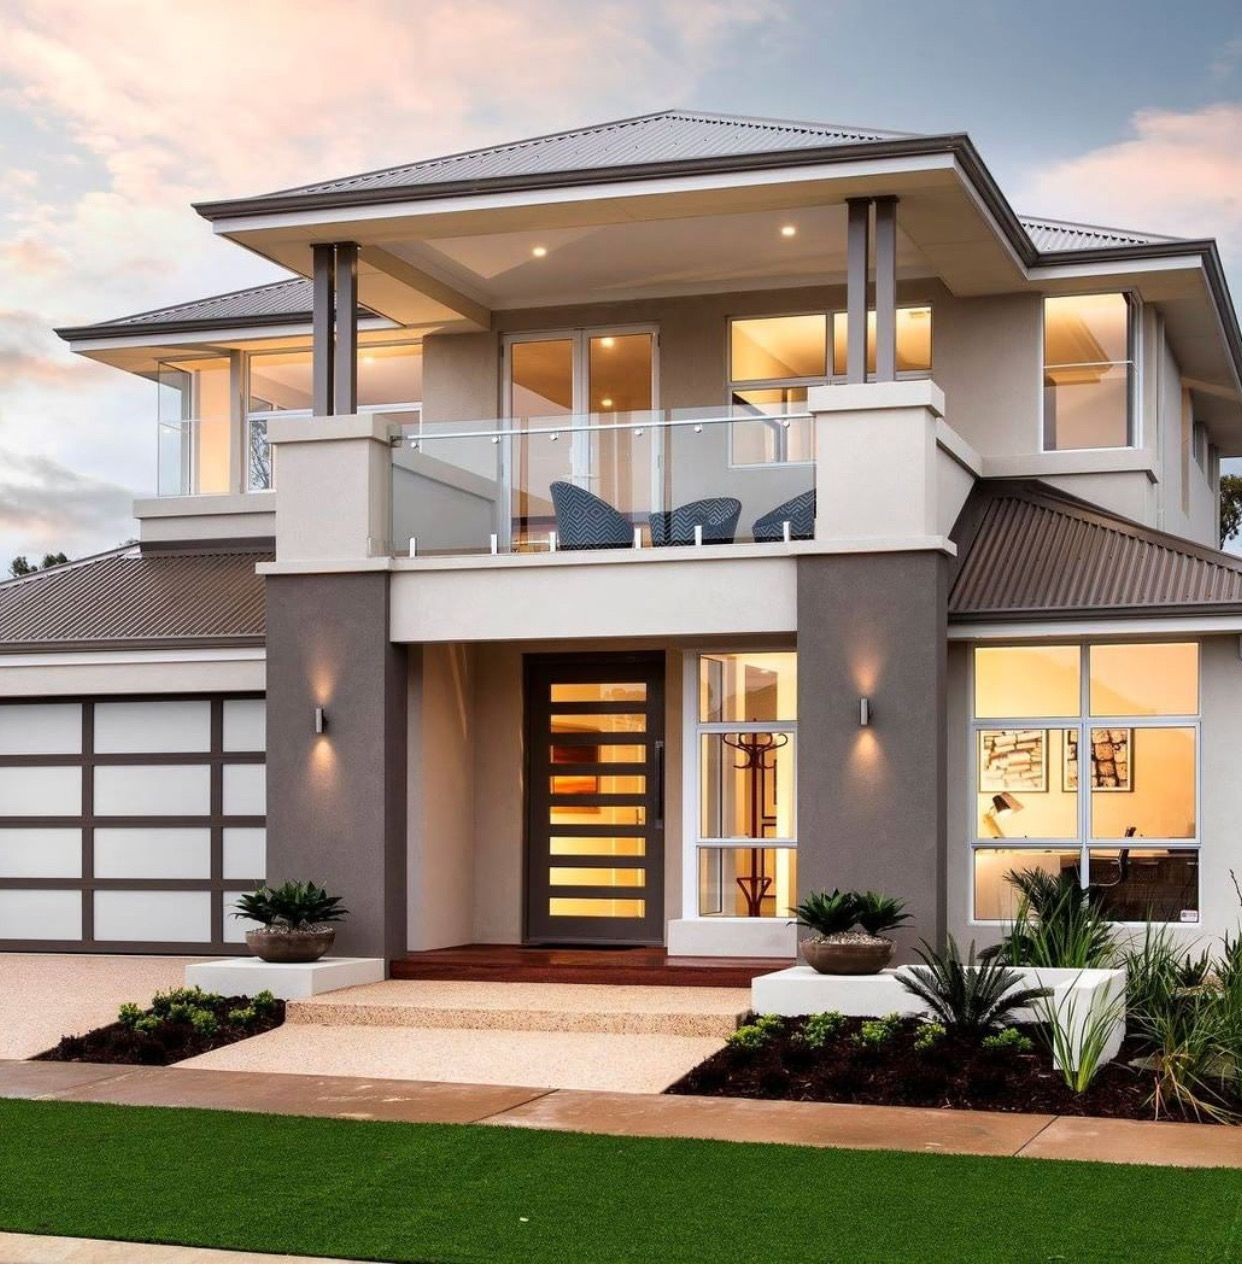 House elevation front designs facade beautiful home new also best project images in decorations decor rh pinterest